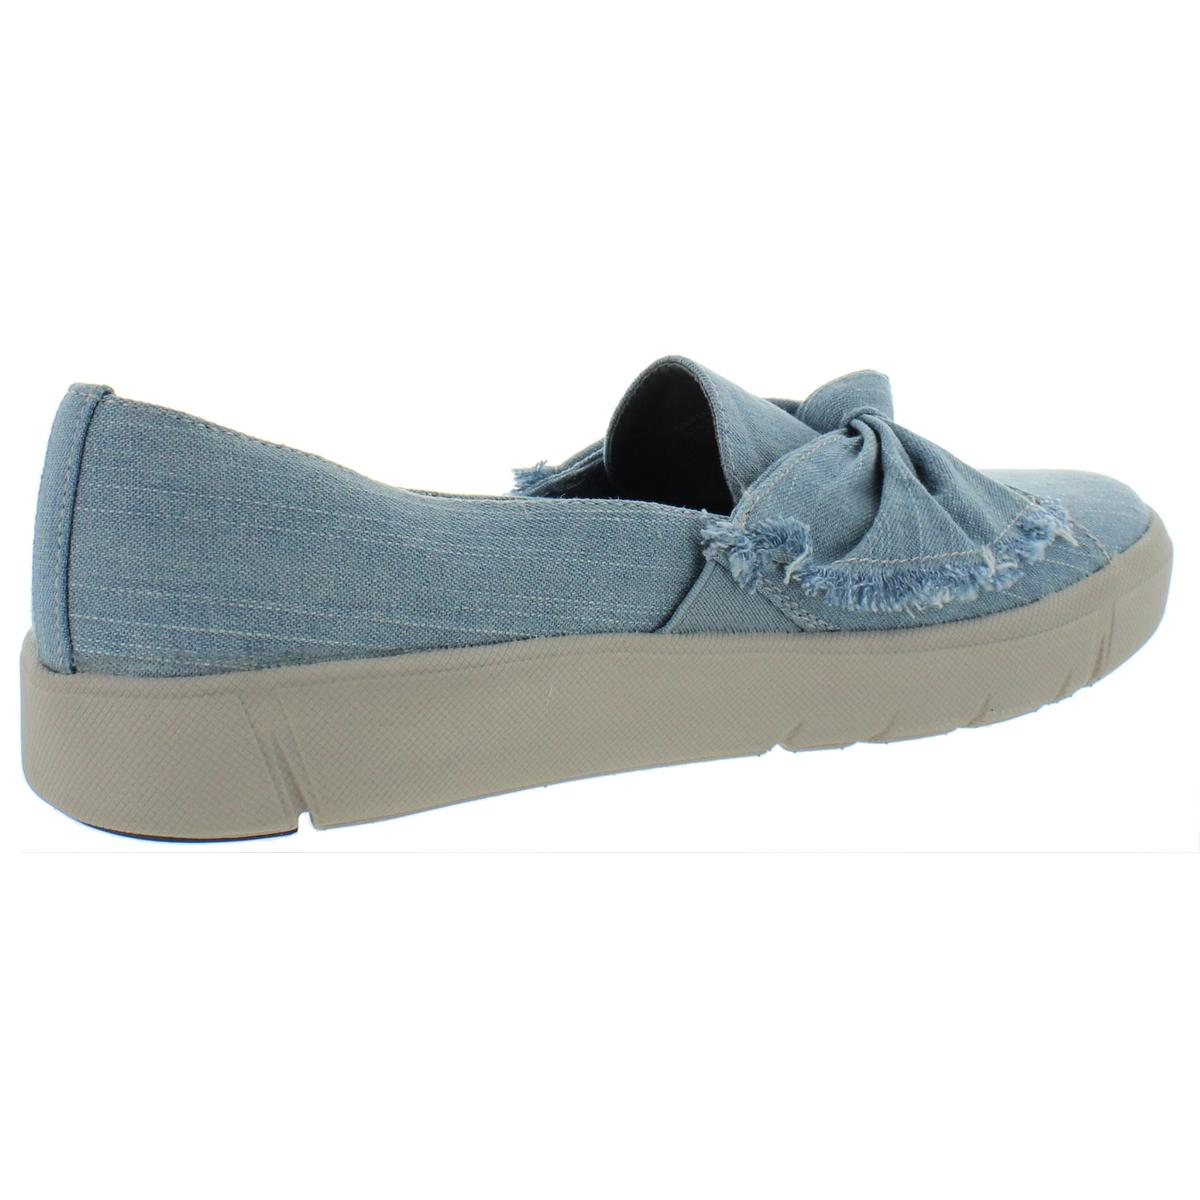 Baretraps-Womens-Britta-Slip-On-Shantung-Knotted-Casual-Shoes-Sneakers-BHFO-6956 thumbnail 6